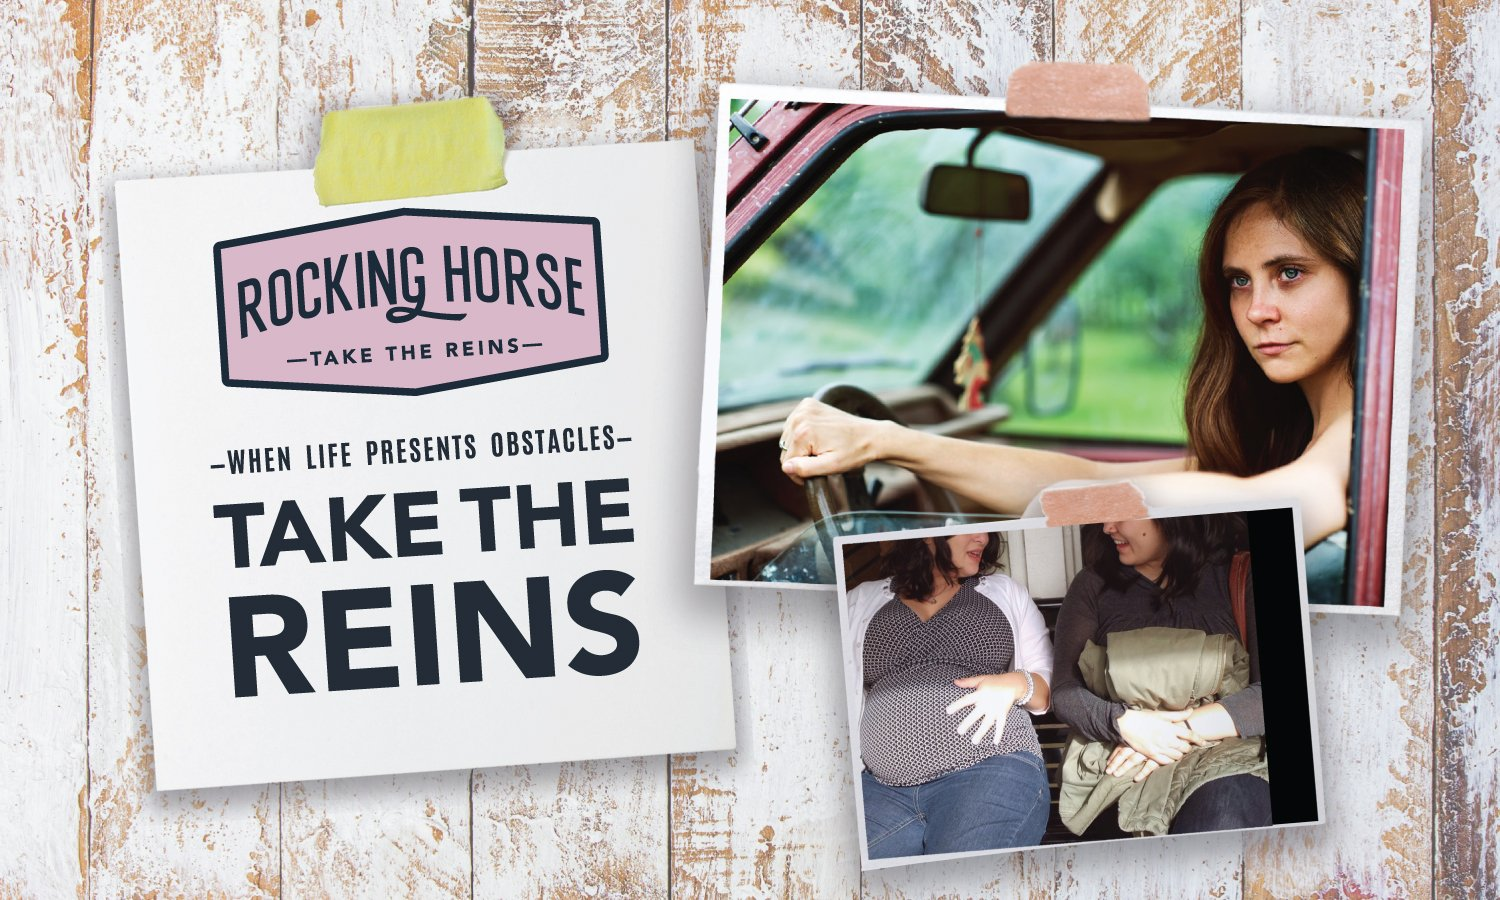 Rocking Horse Campaign Work